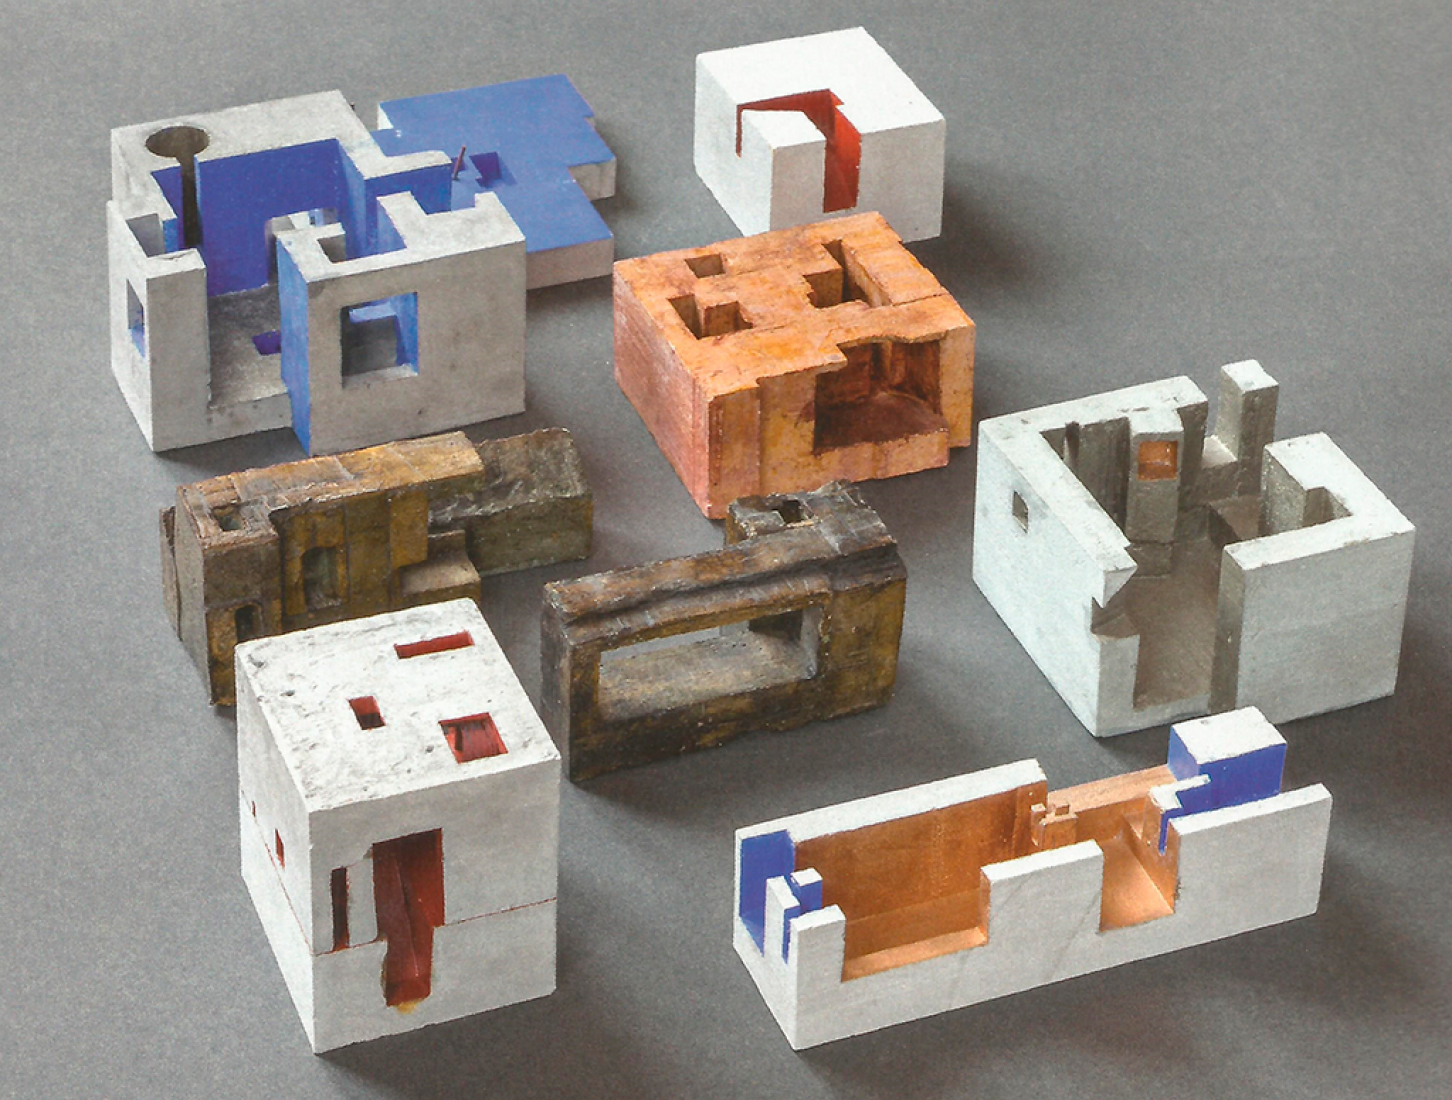 "[Fig. 2] Maquetas realizadas para estudios de viviendas. Fuente: ""Peter Zumthor: Buildings and Projects"" de P. Zumthor, vol3, p.35. Autor: Atelier Peter Zumthor & Partner."